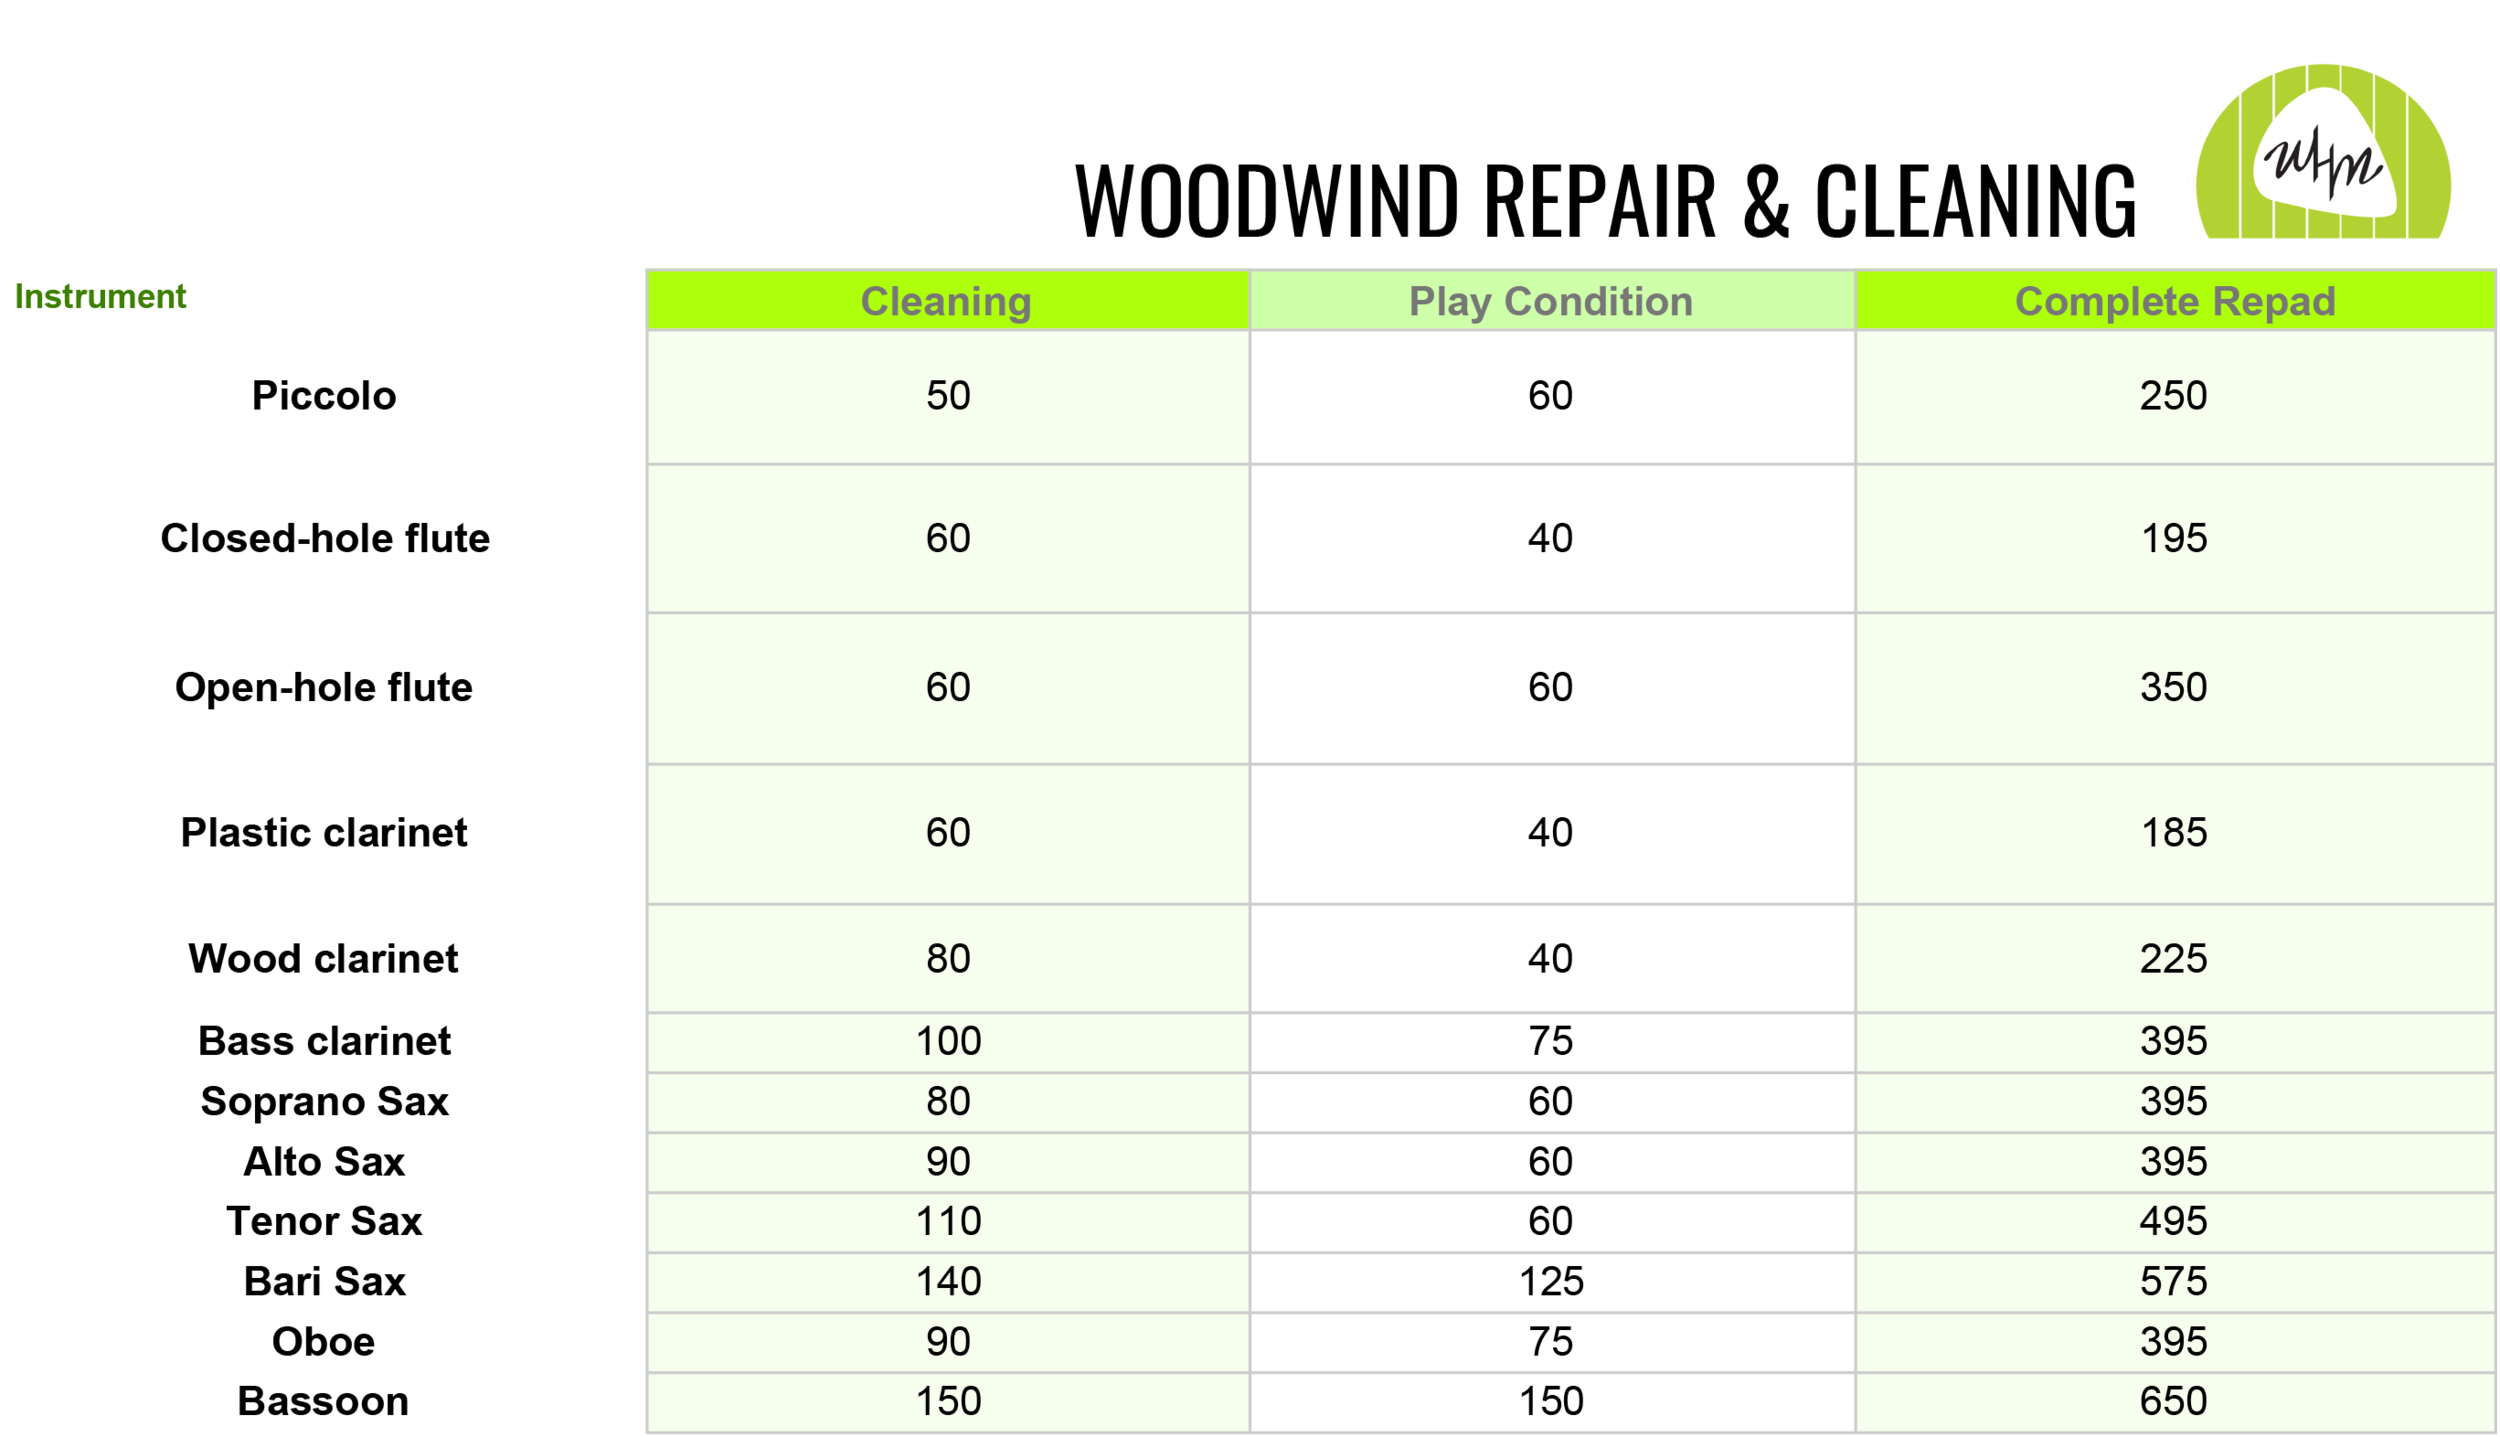 Woodwind Repair - Sheet1 (1).png